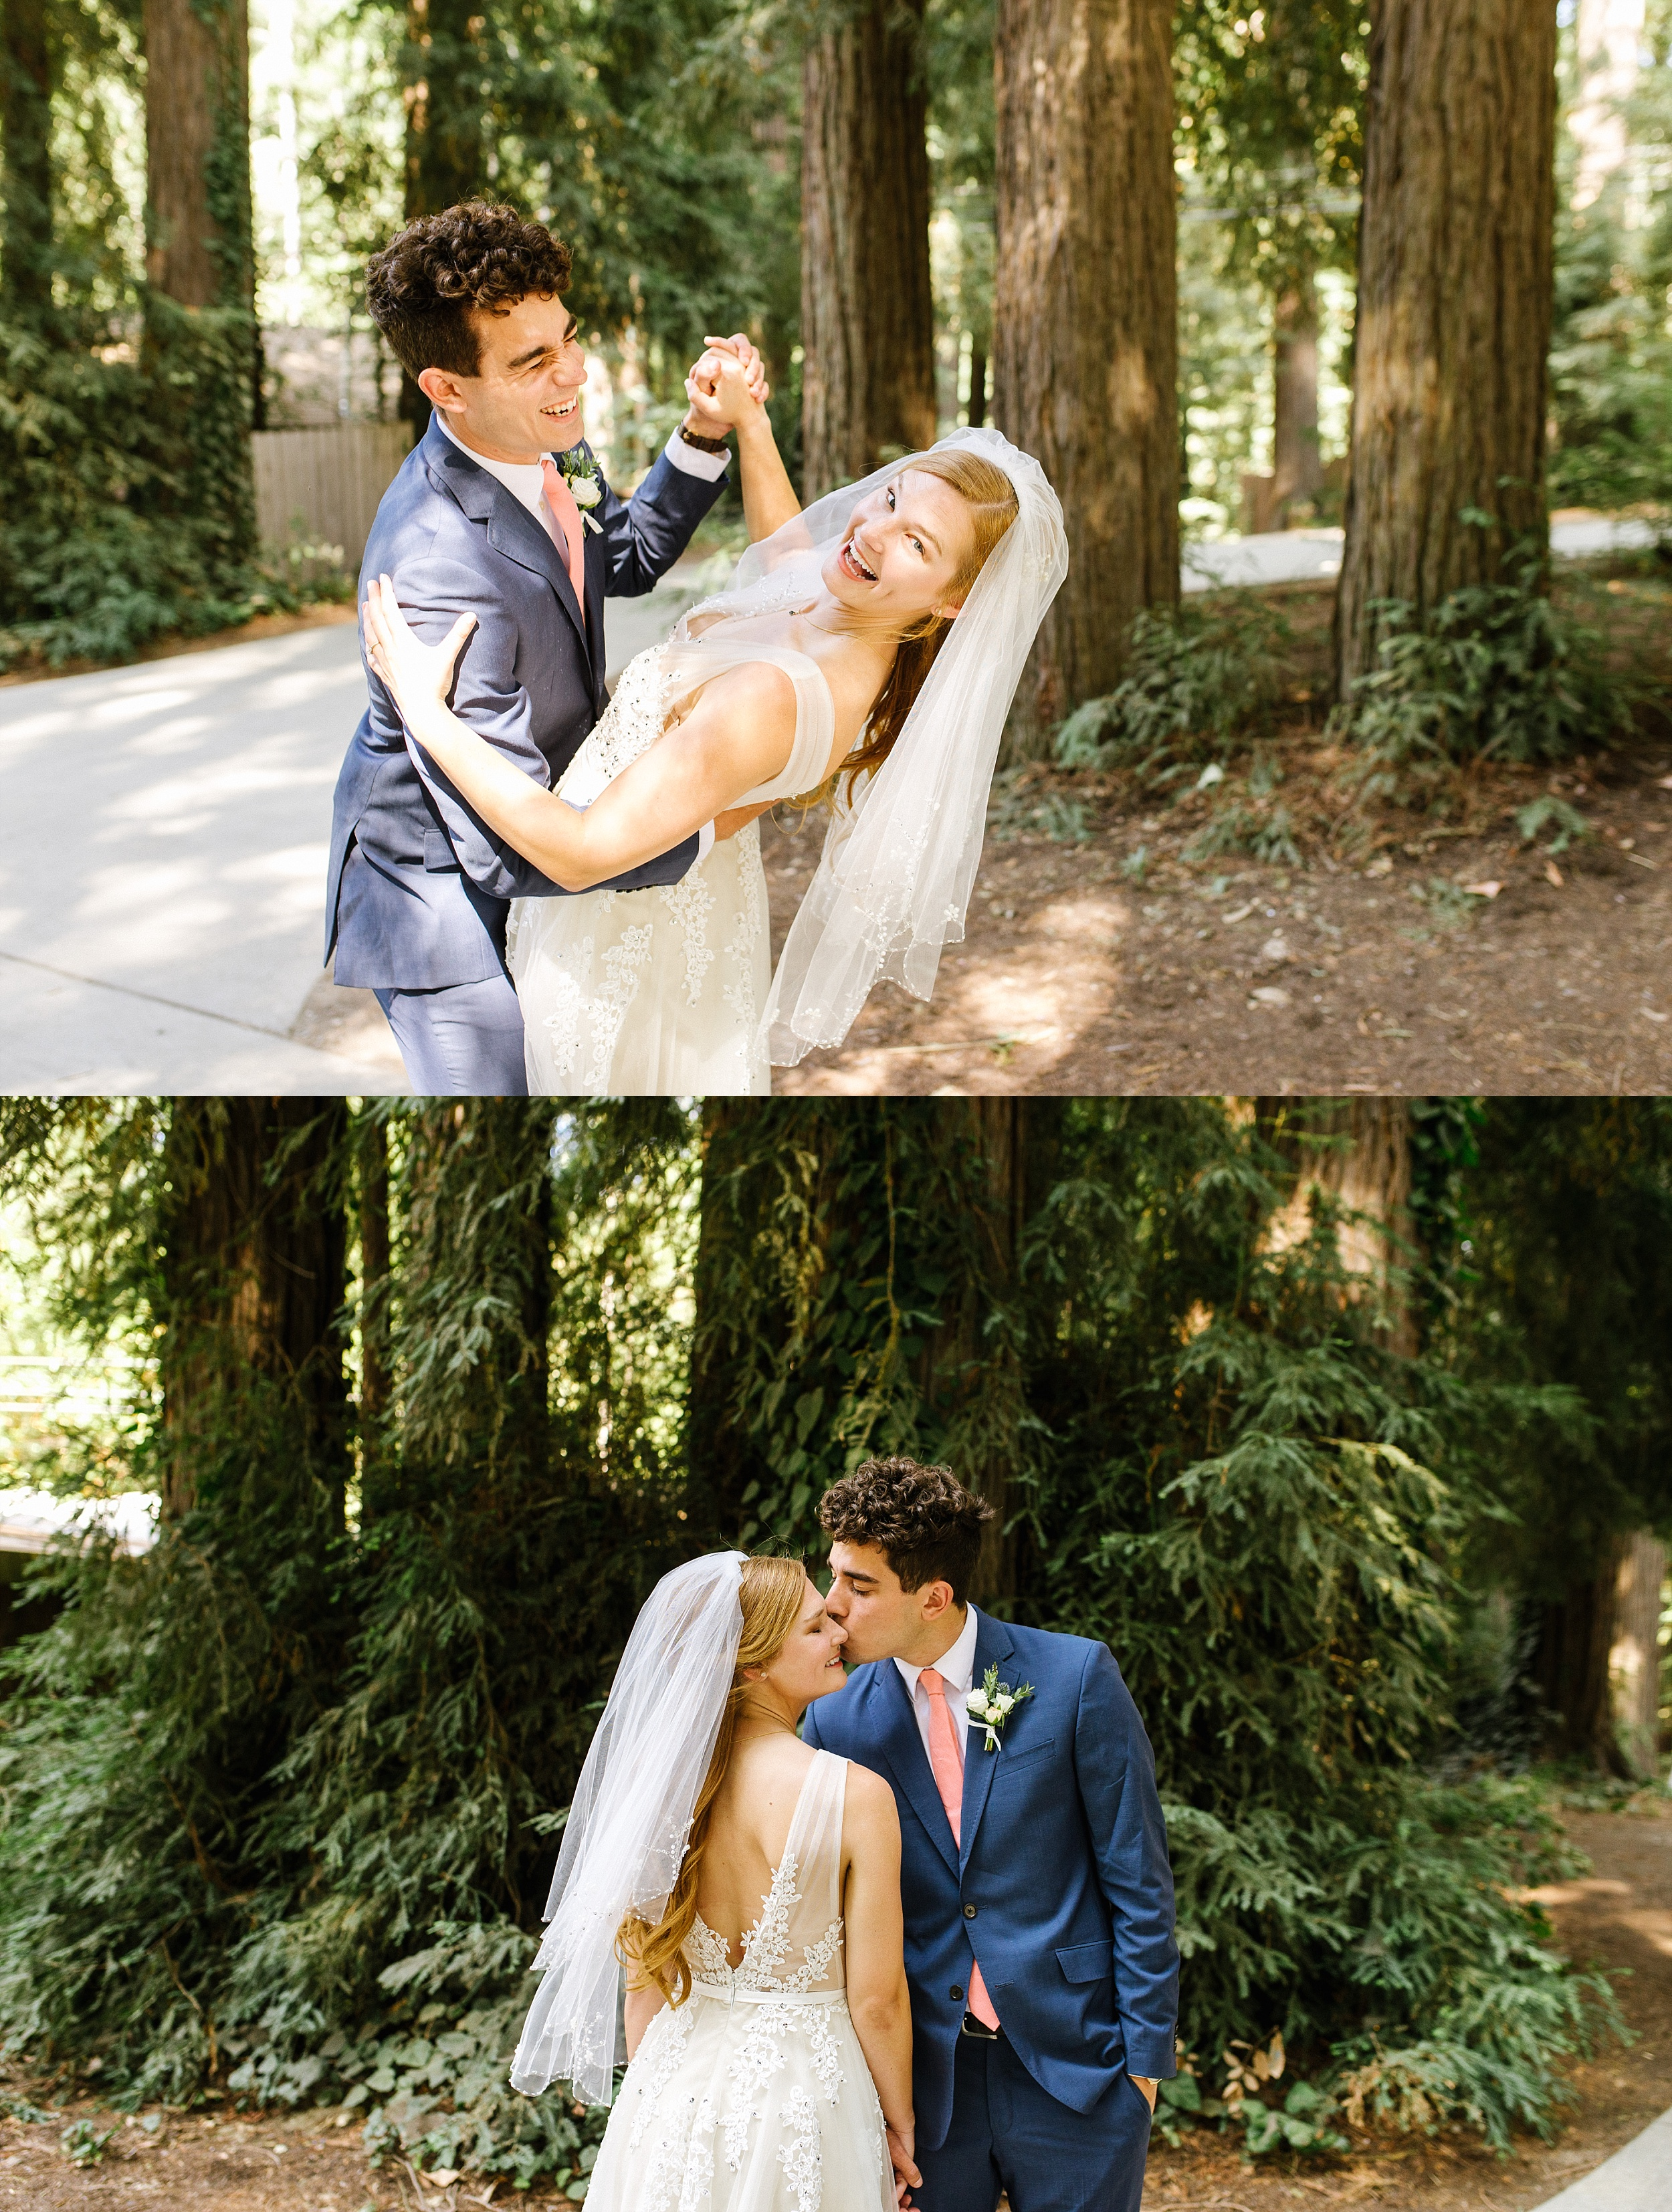 Amphitheatre-of-the-Redwoods-wedding-erikariley_chelsea-dier-photography_0008.jpg